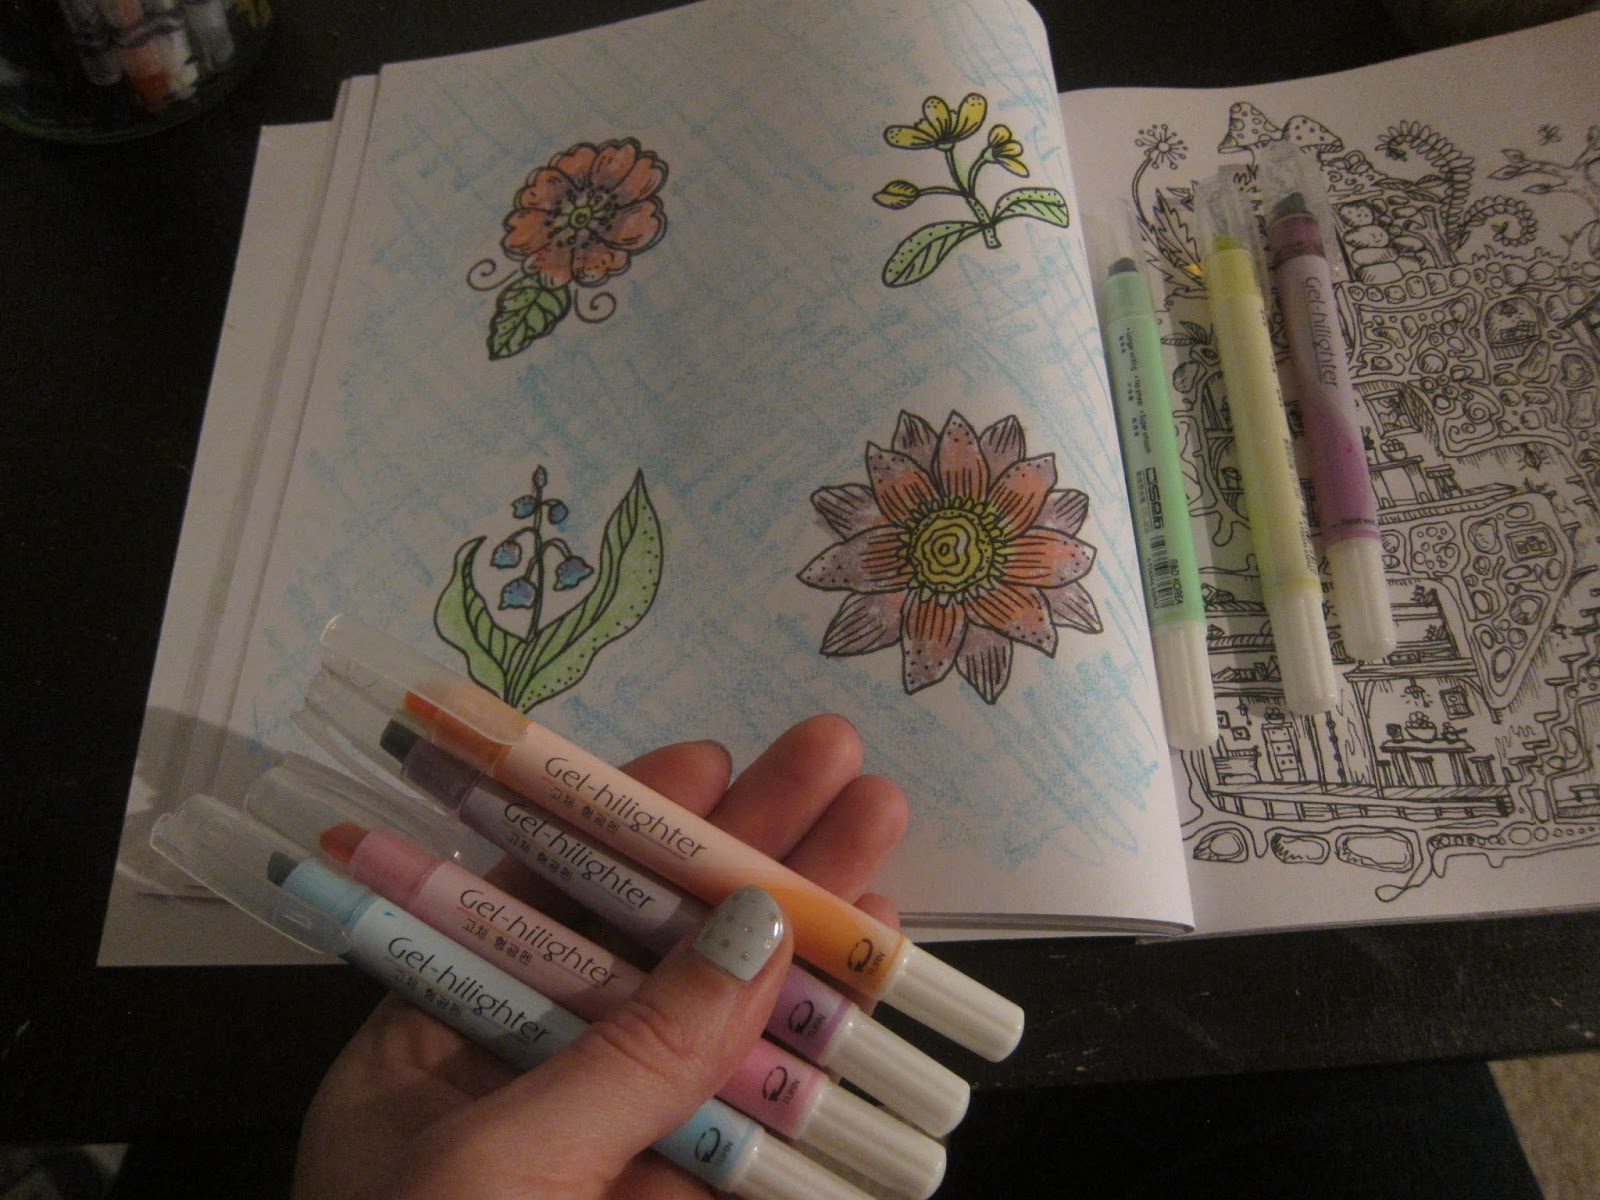 Online coloring for 7 year olds - These Gel Highlighters Actually Blend With Each Other Really Well Too My 7 Year Old Was Having A Blast Coloring With The Yellow And Then Running The Blue